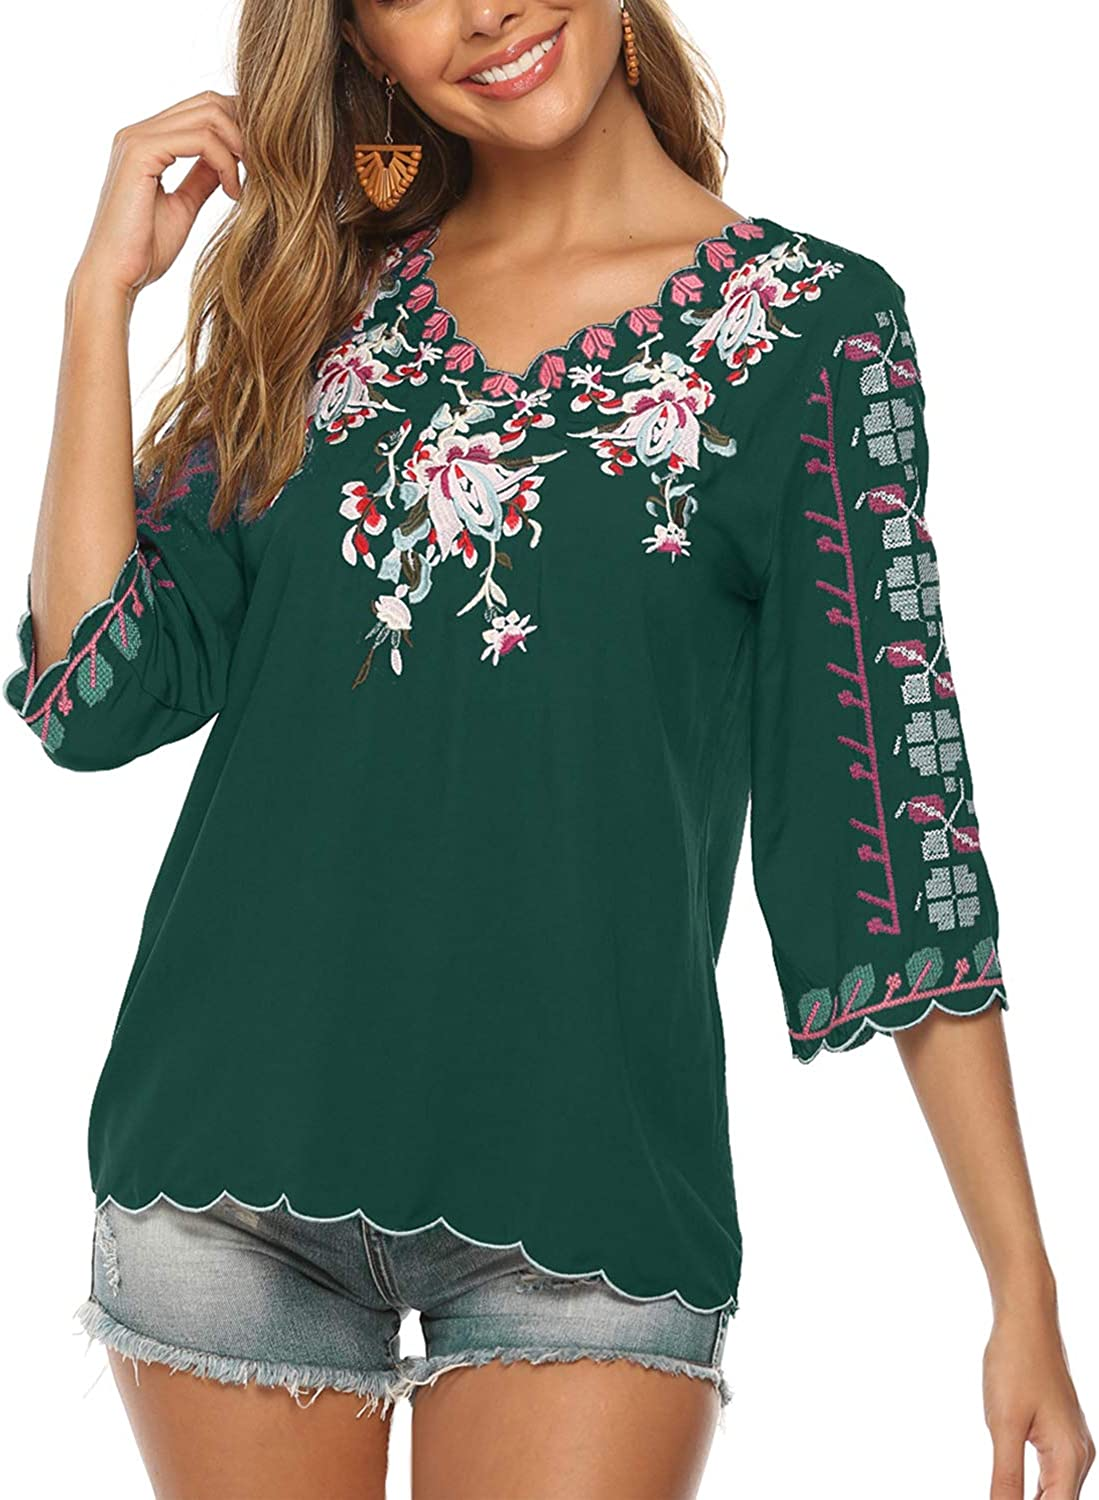 New York Mall Mansy Women's Embroidery Mexican Bohemian Sleeve Ranking TOP19 Short Ruf Shirt